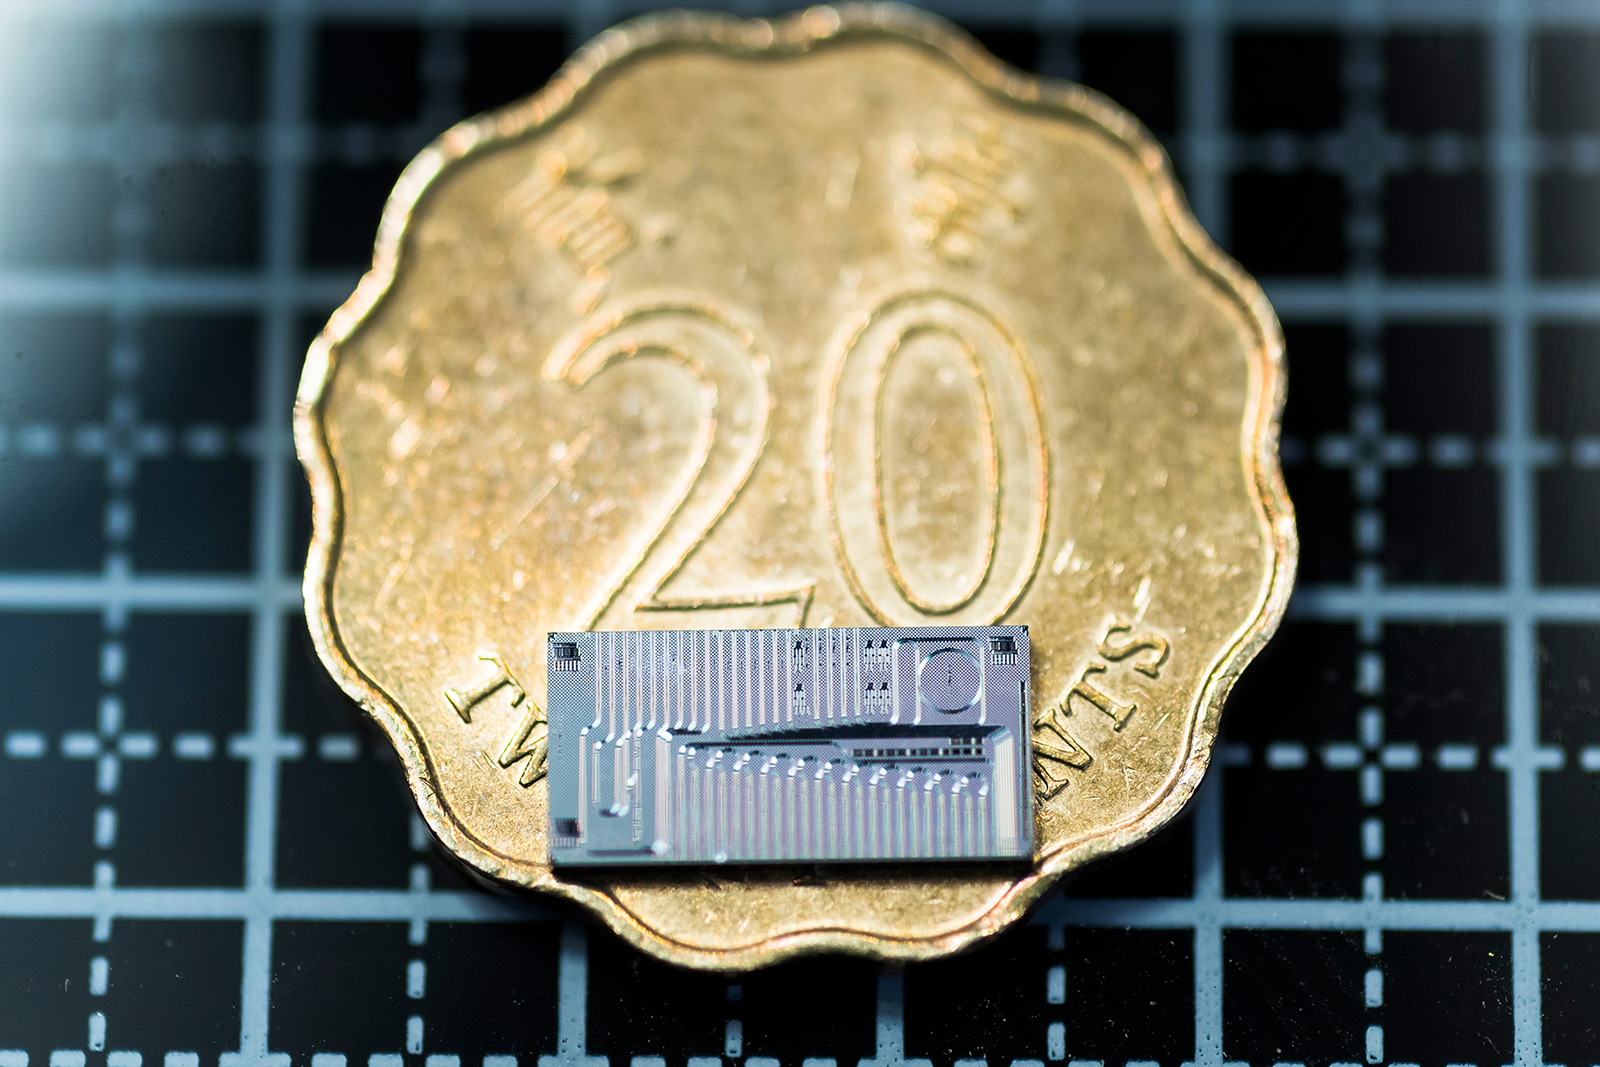 The micro-ring resonator chip used in the research.